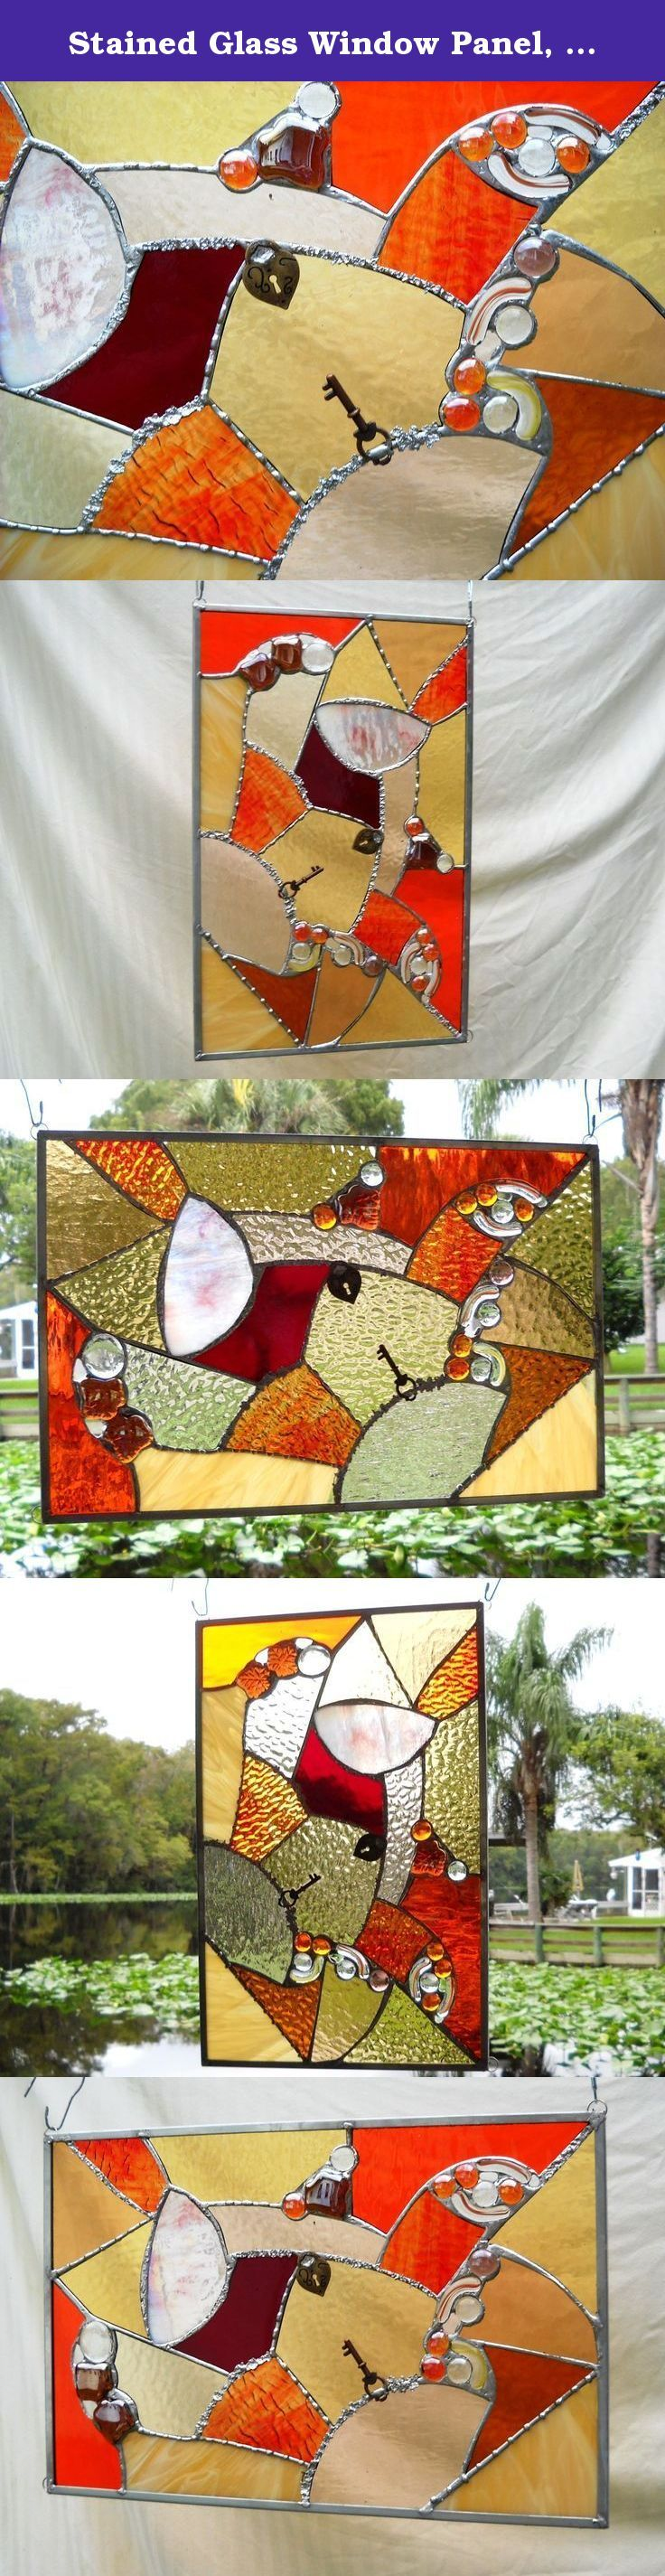 Stained Glass Window Panel, Glass Crazy Quilt, Patchwork Quilt, Suncatcher Mixed Media, One of a Kind Stained Glass Window Transom, OOAK. For the love of quilting -- and glass -- enjoy this stained glass panel in mixed media, complete with recycled and found items! Celebrate the colors of the sun with this stained glass crazy quilt. Replace your fabric curtains or valance, and watch the sun play with the textures and colors of the stained glass as it moves throughout the day. Every minute…